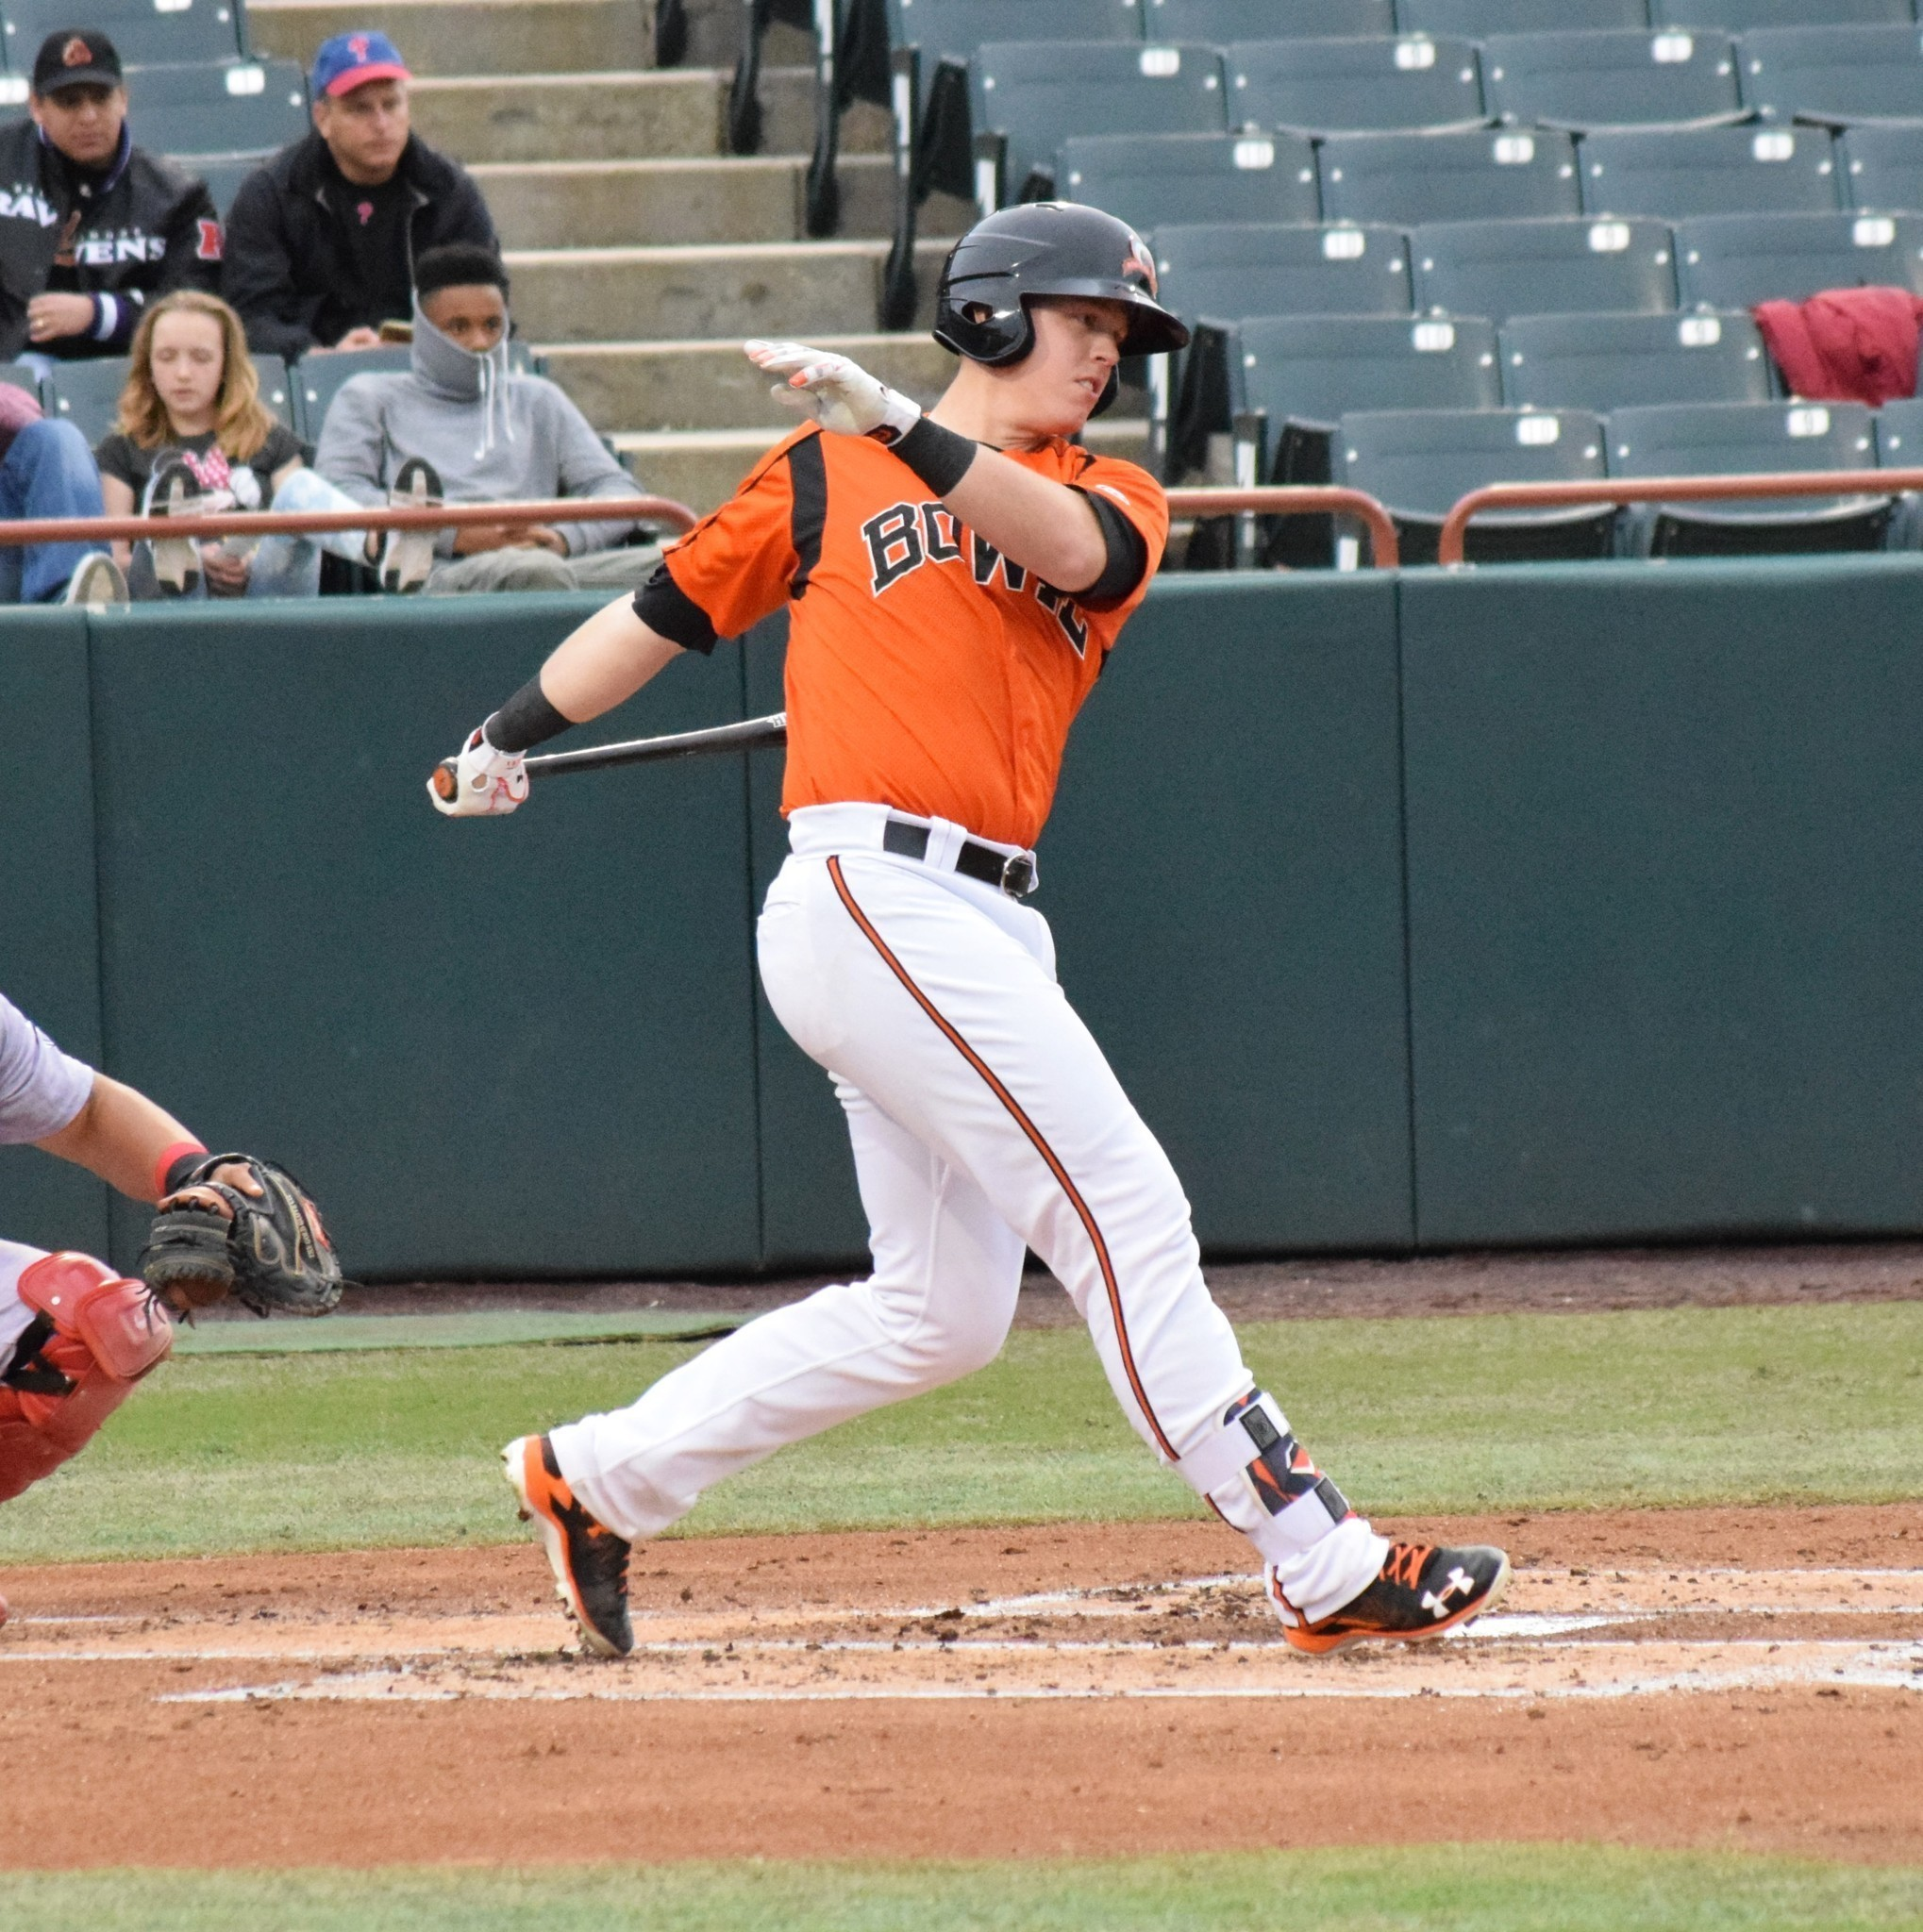 Bal-orioles-prospect-chance-sisco-could-benefit-big-from-welington-castillo-s-wbc-absence-20170209